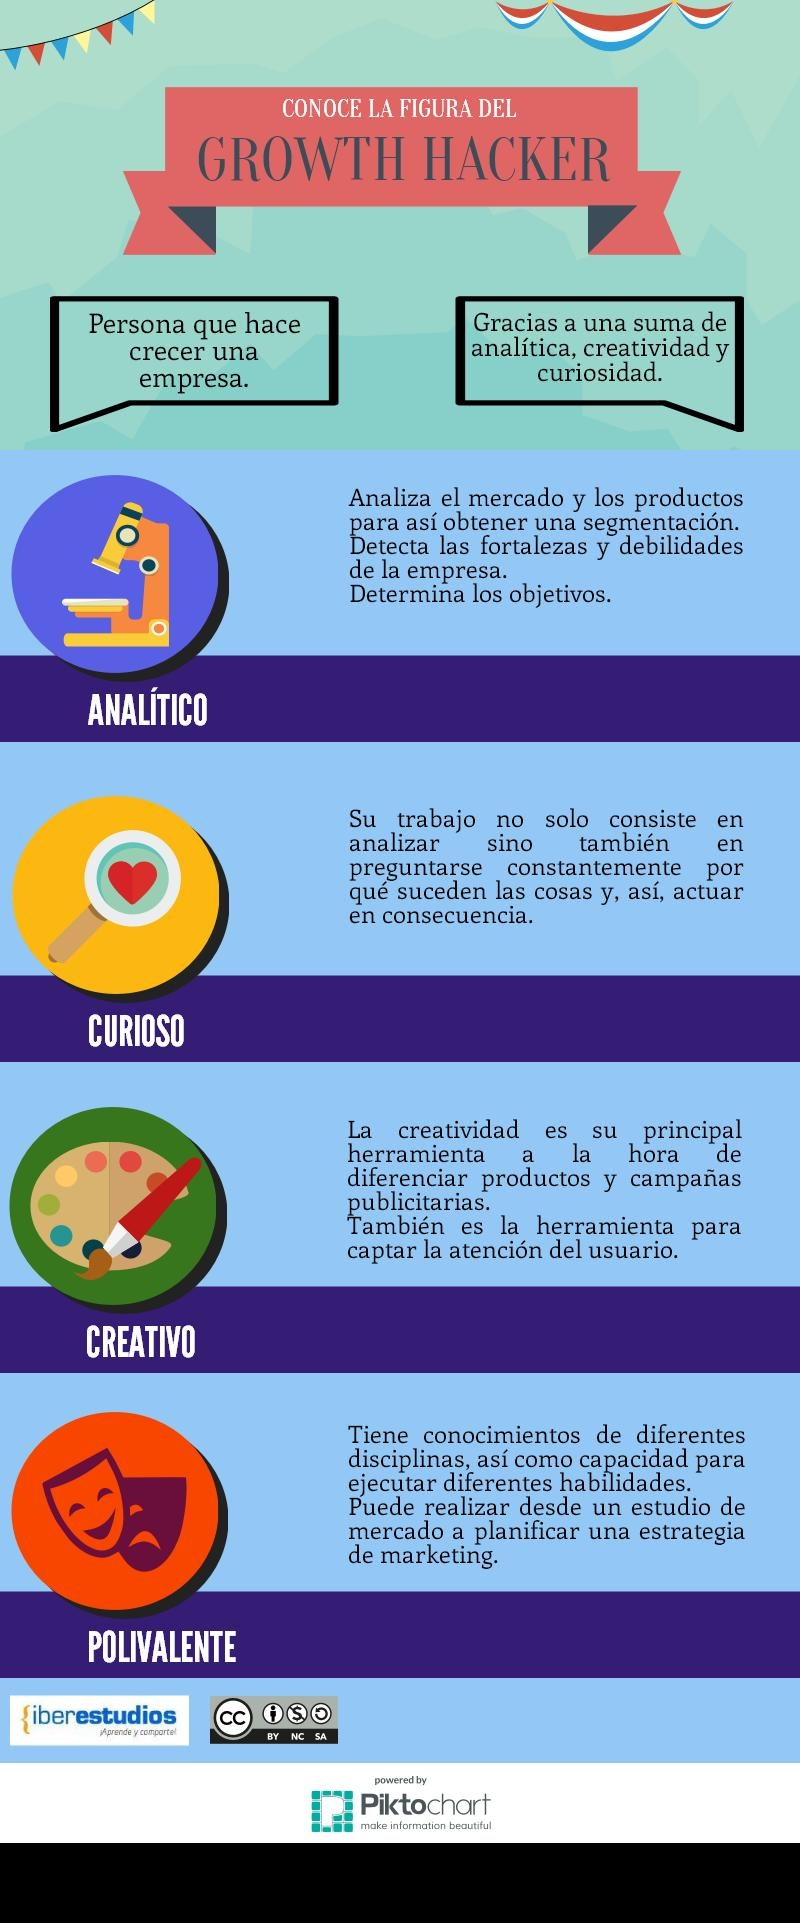 caracteristicas-growth-hacker